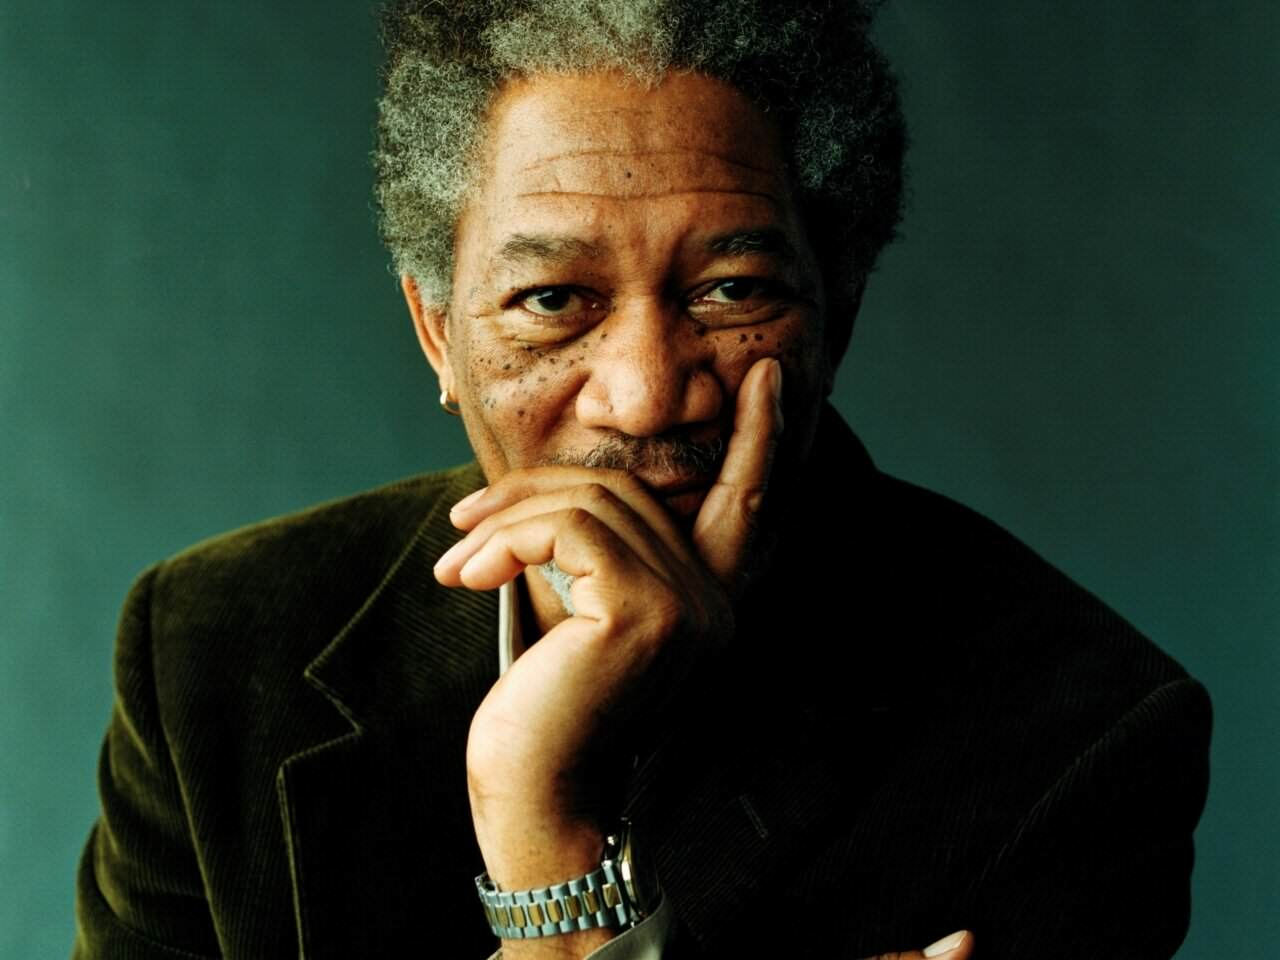 freeman Morgan Freeman Wants Weed Legalised Across The Board